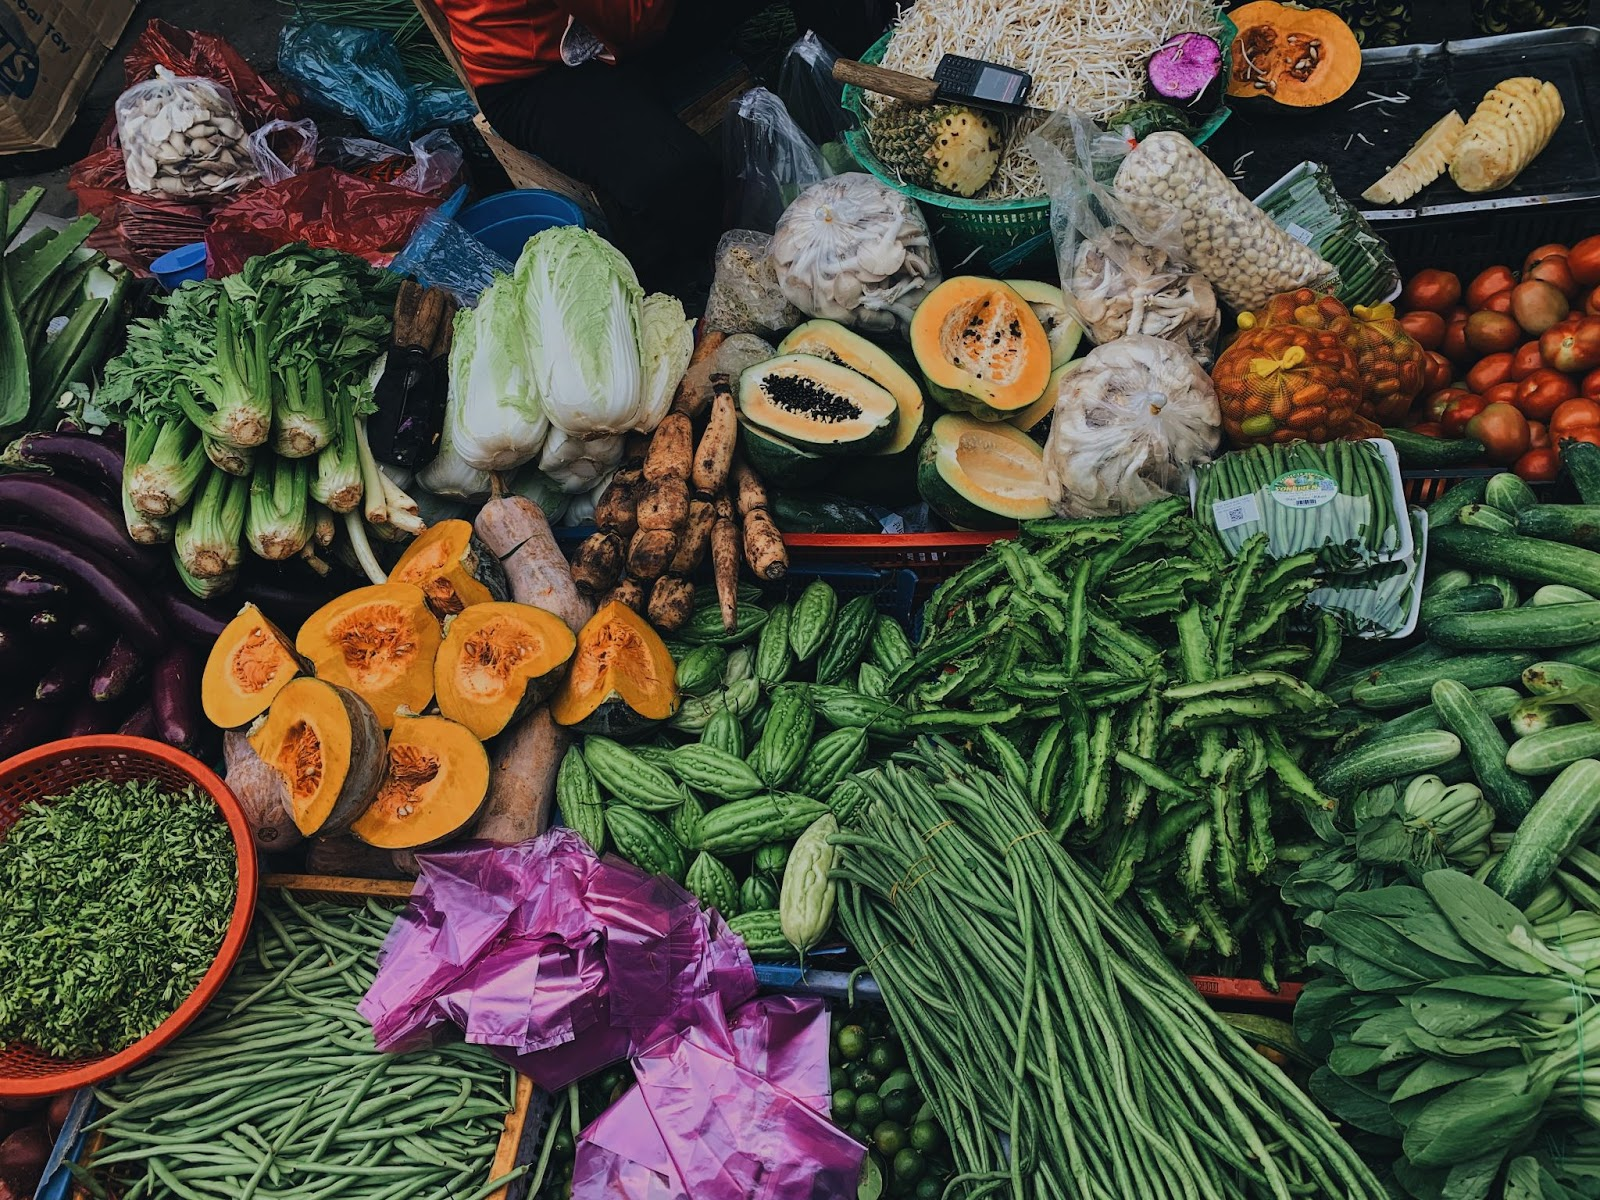 fruits and vegetables being sold on the sidewalk